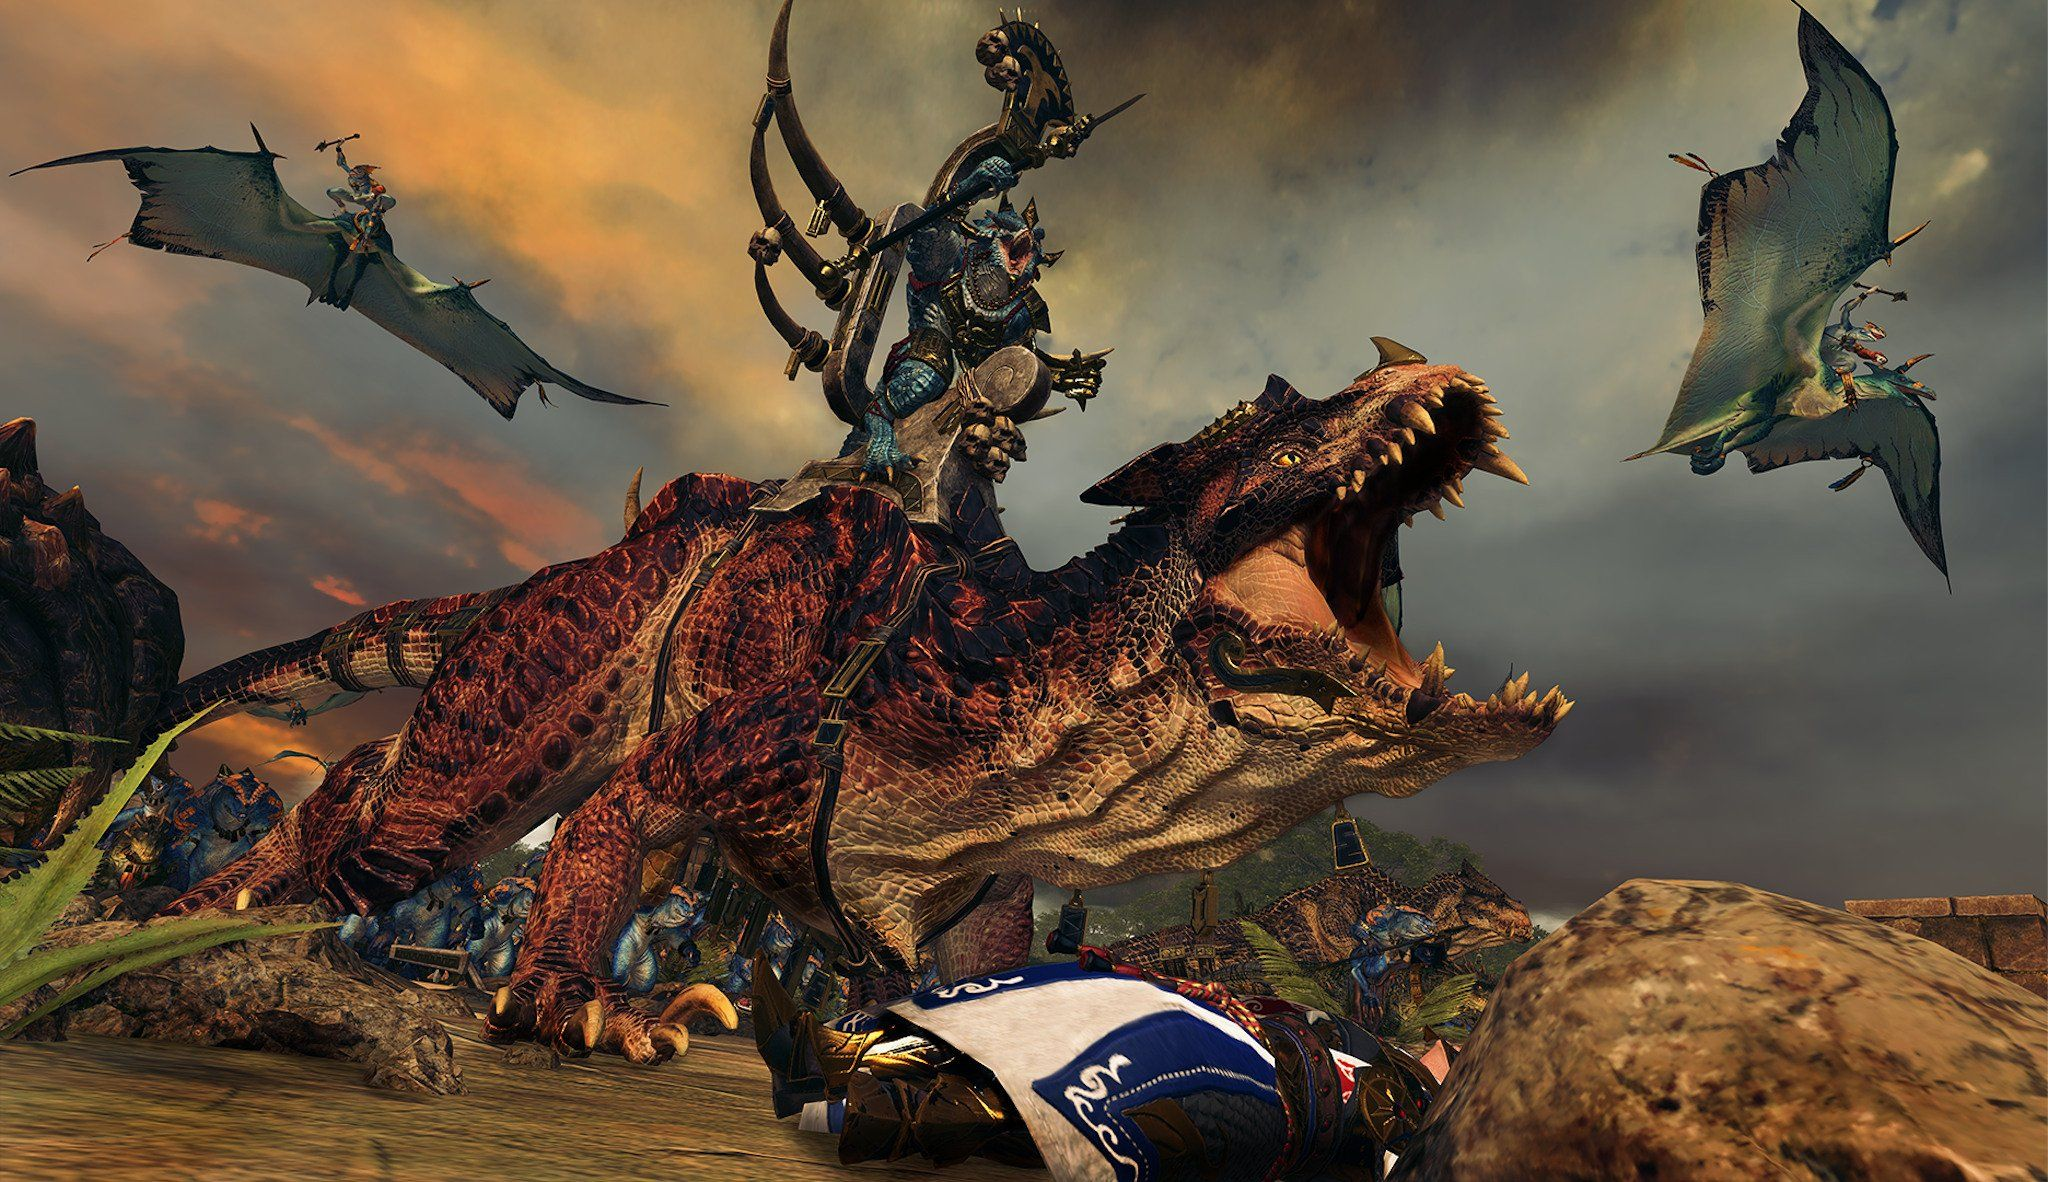 Total War: Warhammer II Hands-on – Lizardmen and Elves collide on the battlefield